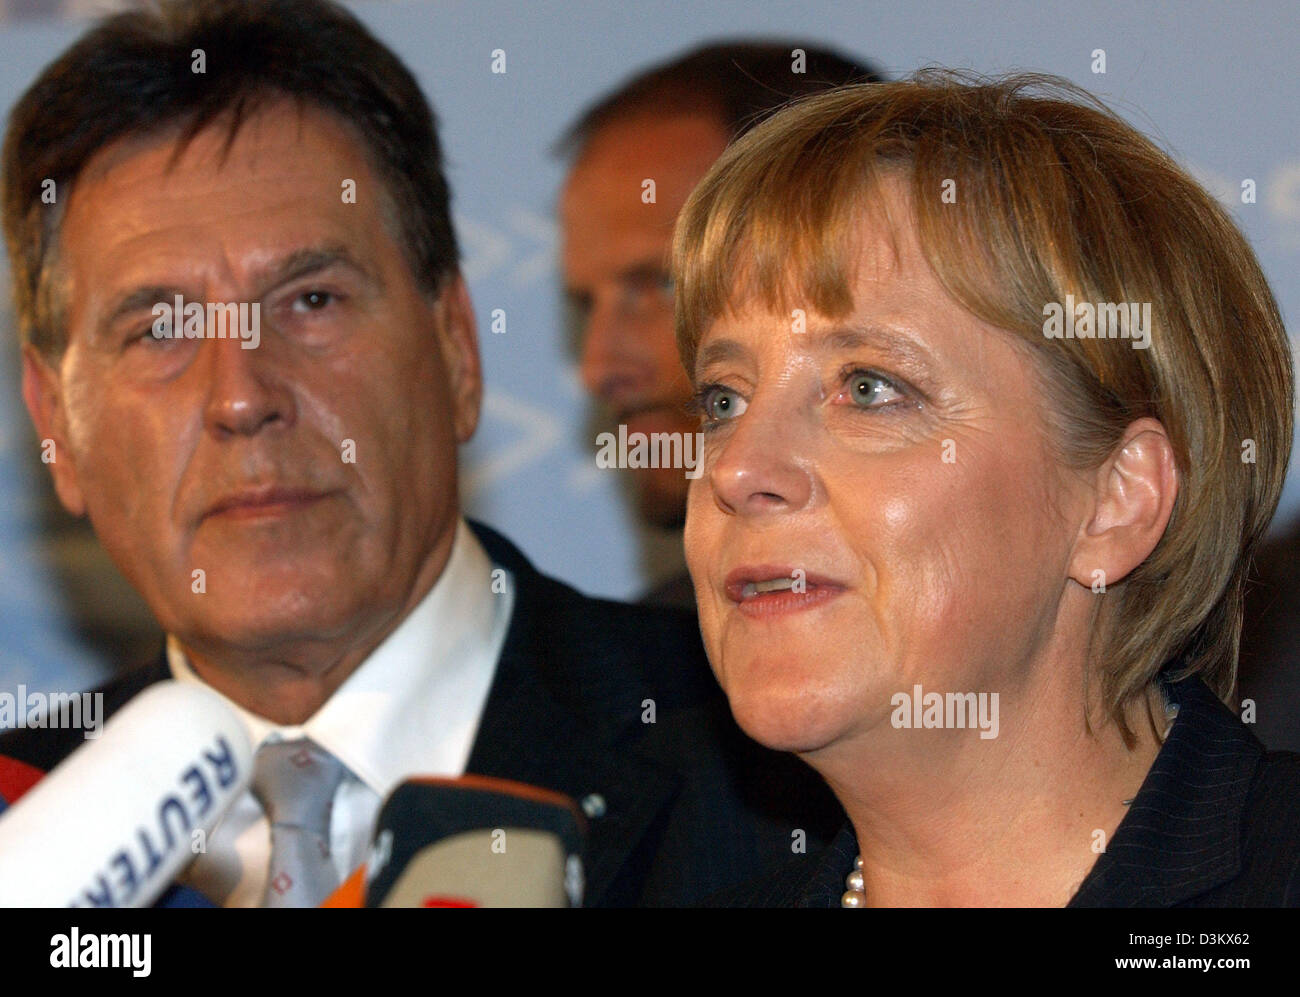 (dpa) - Angela Merkel (R), Chairwoman of the CDU and chancellor candidate, stands next to Michael Glos, Head of the Bavarian CSU, during a short press conference after the session of the new elected parliamentary faction of the CDU/CSU in Berlin, Tuesday, 20 September 2005. Despite the week results in the general election for the German Bundestag, Merkel was re-elected by her party Stock Photo